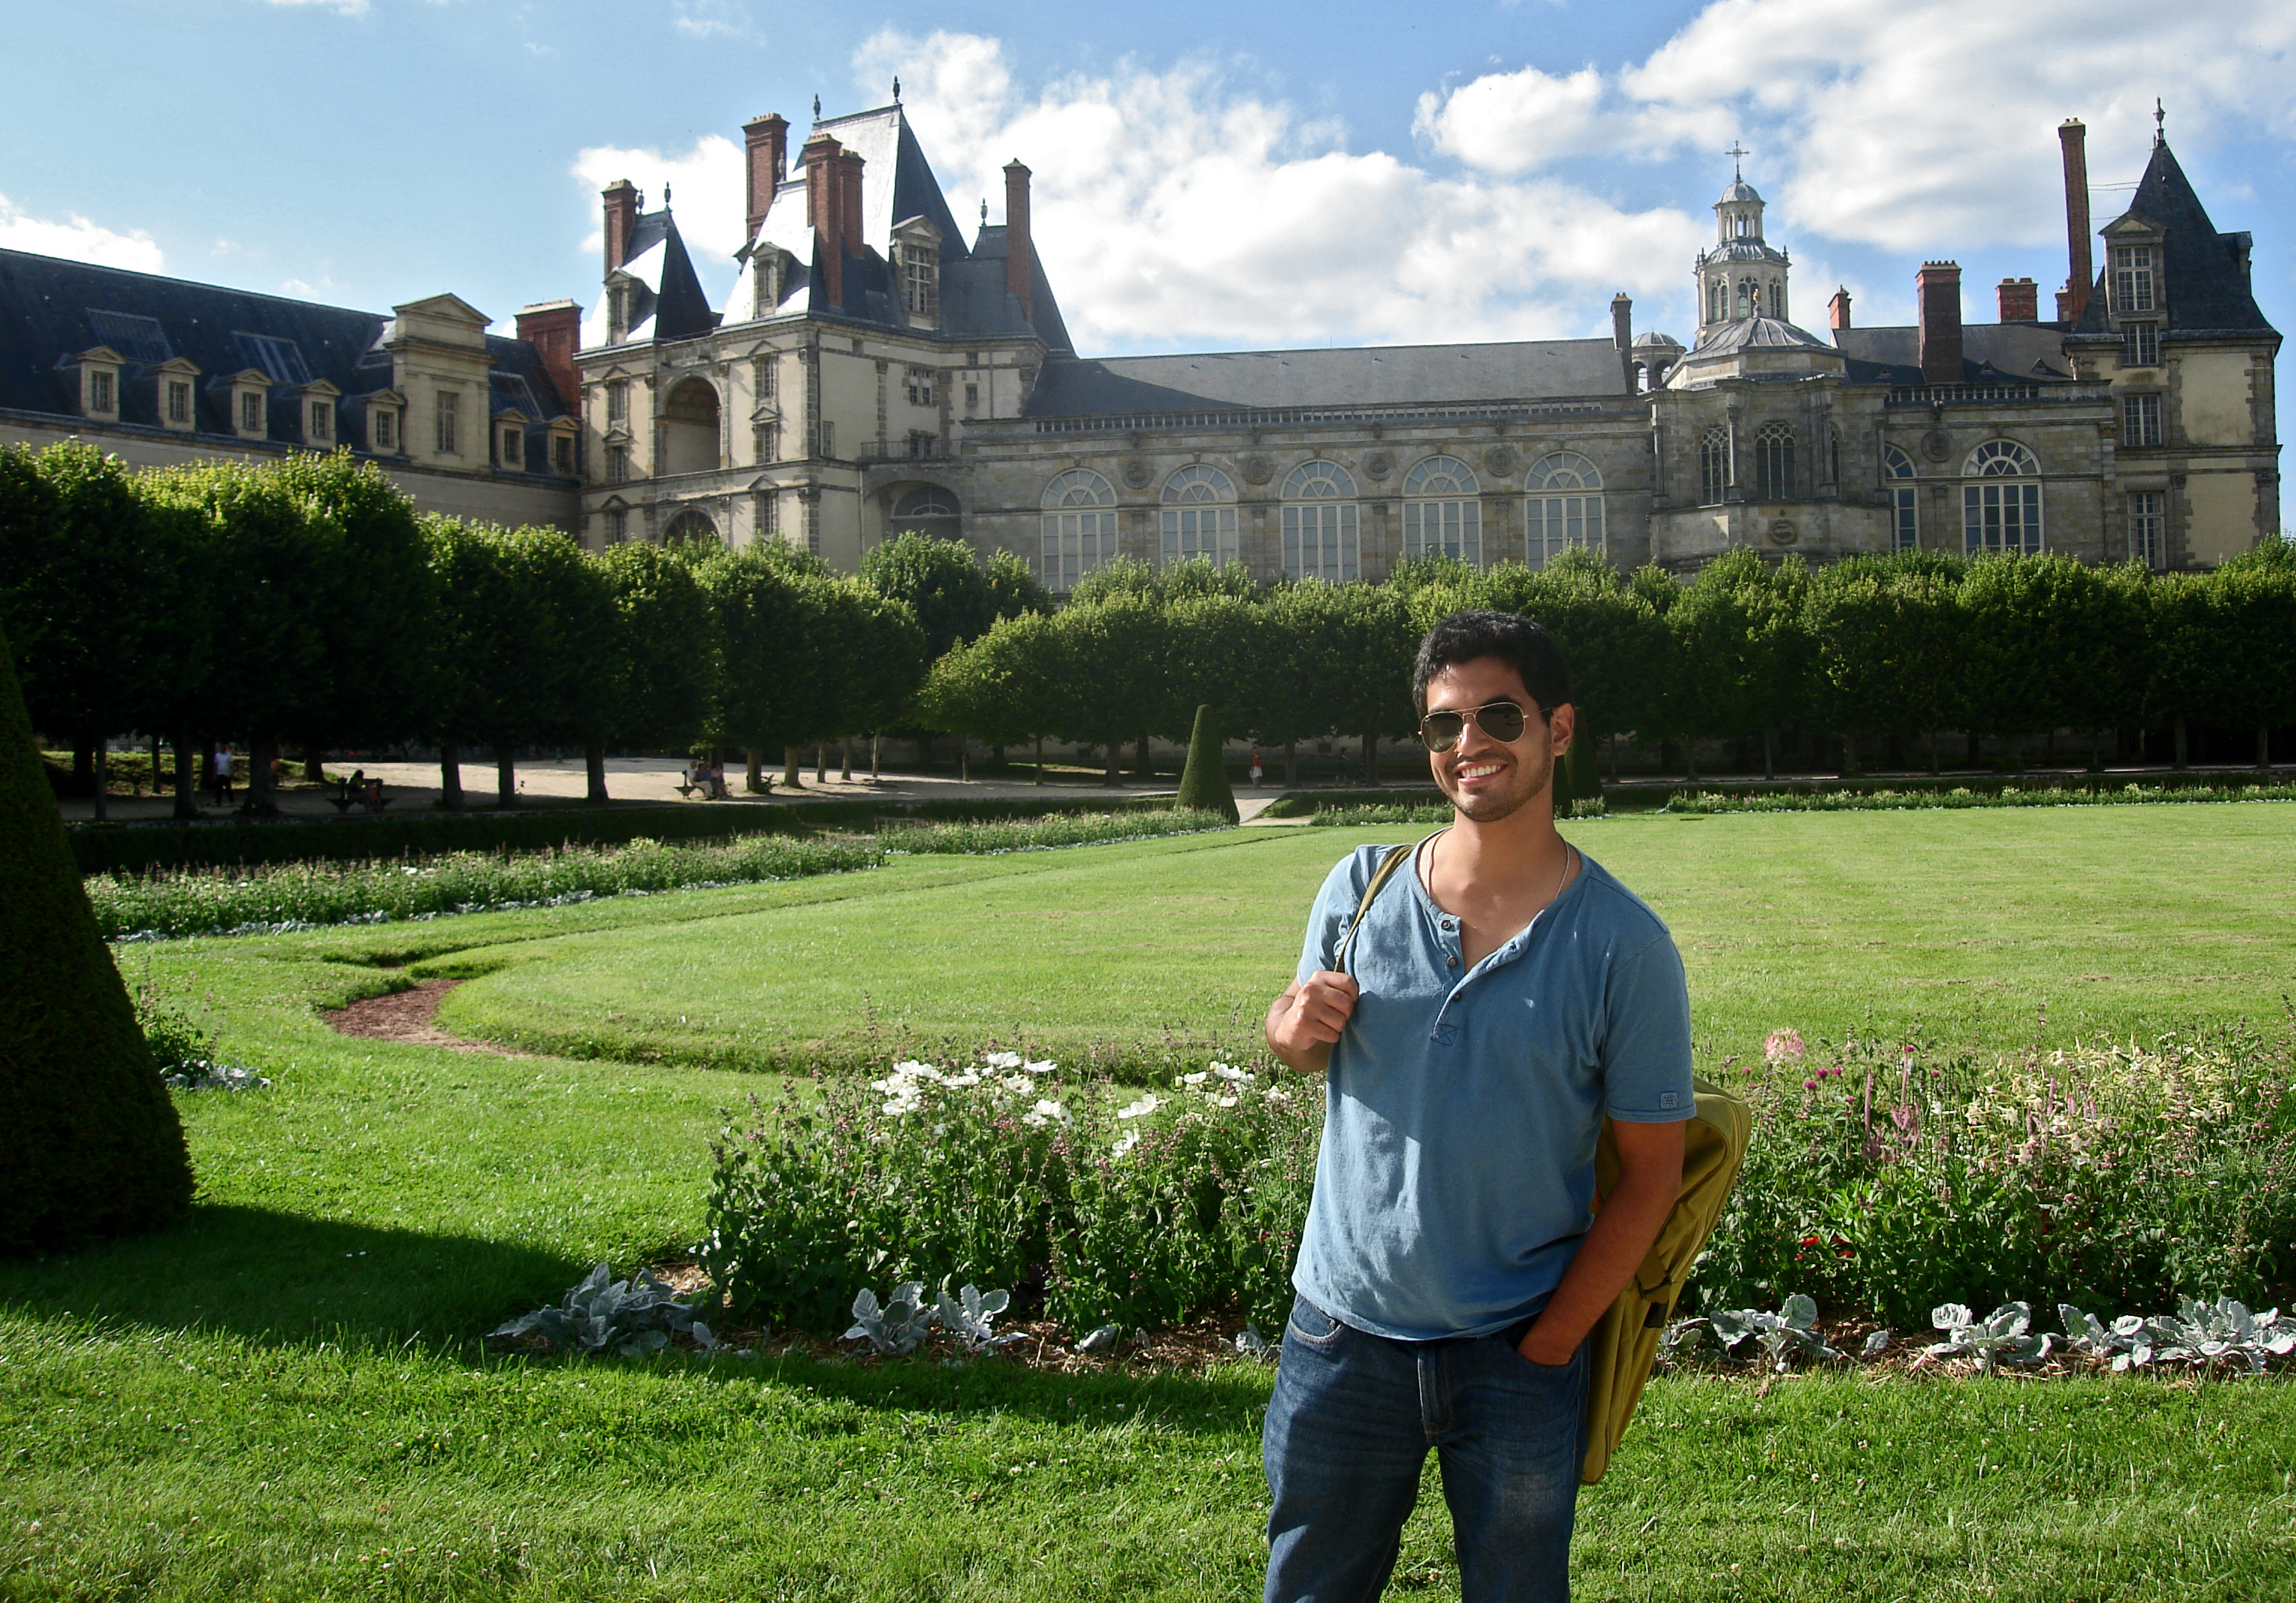 Deigo Arias-Caballero standing with the large chateau of Fontainebleau in the background.